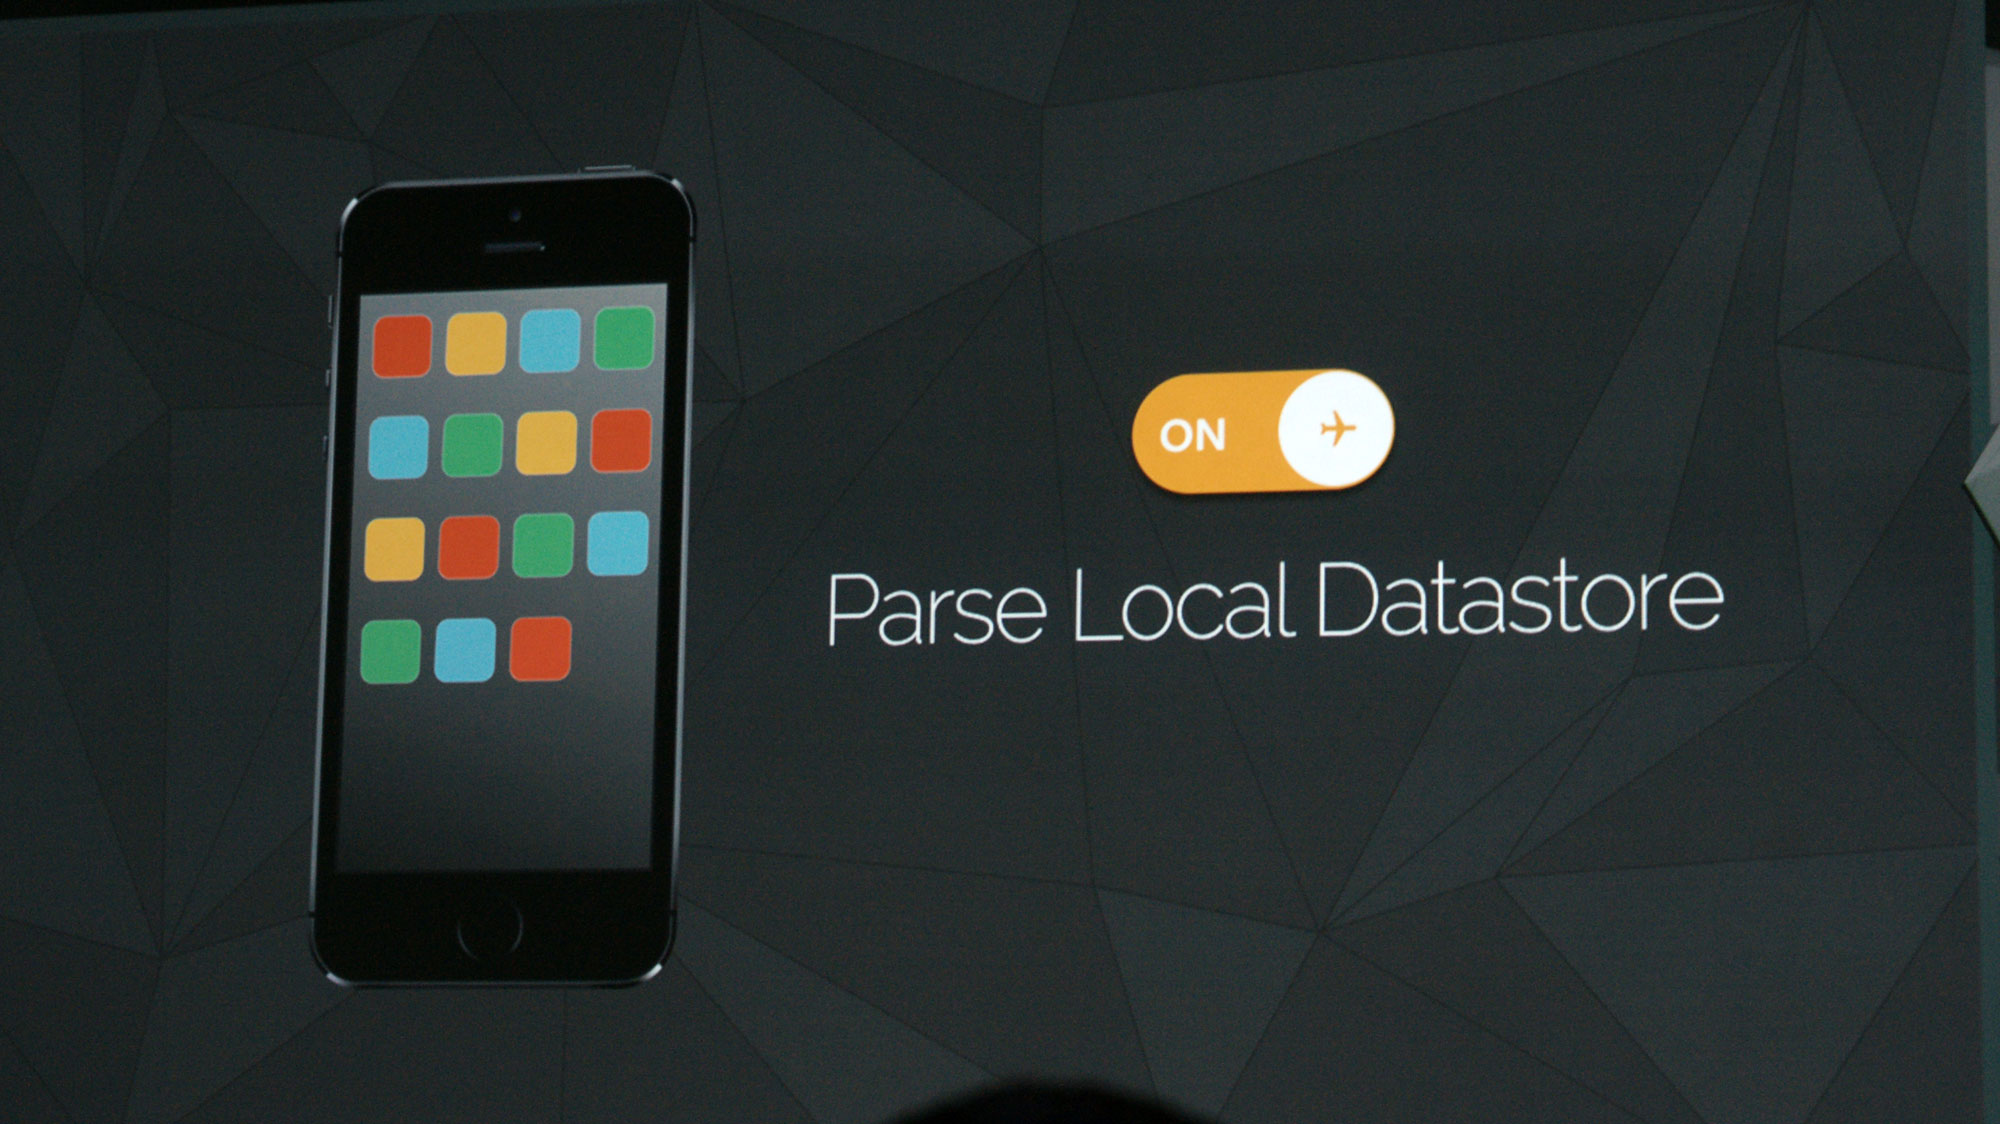 Sad about Parse shutting down? This GitHub repo has a handy list of replacement services